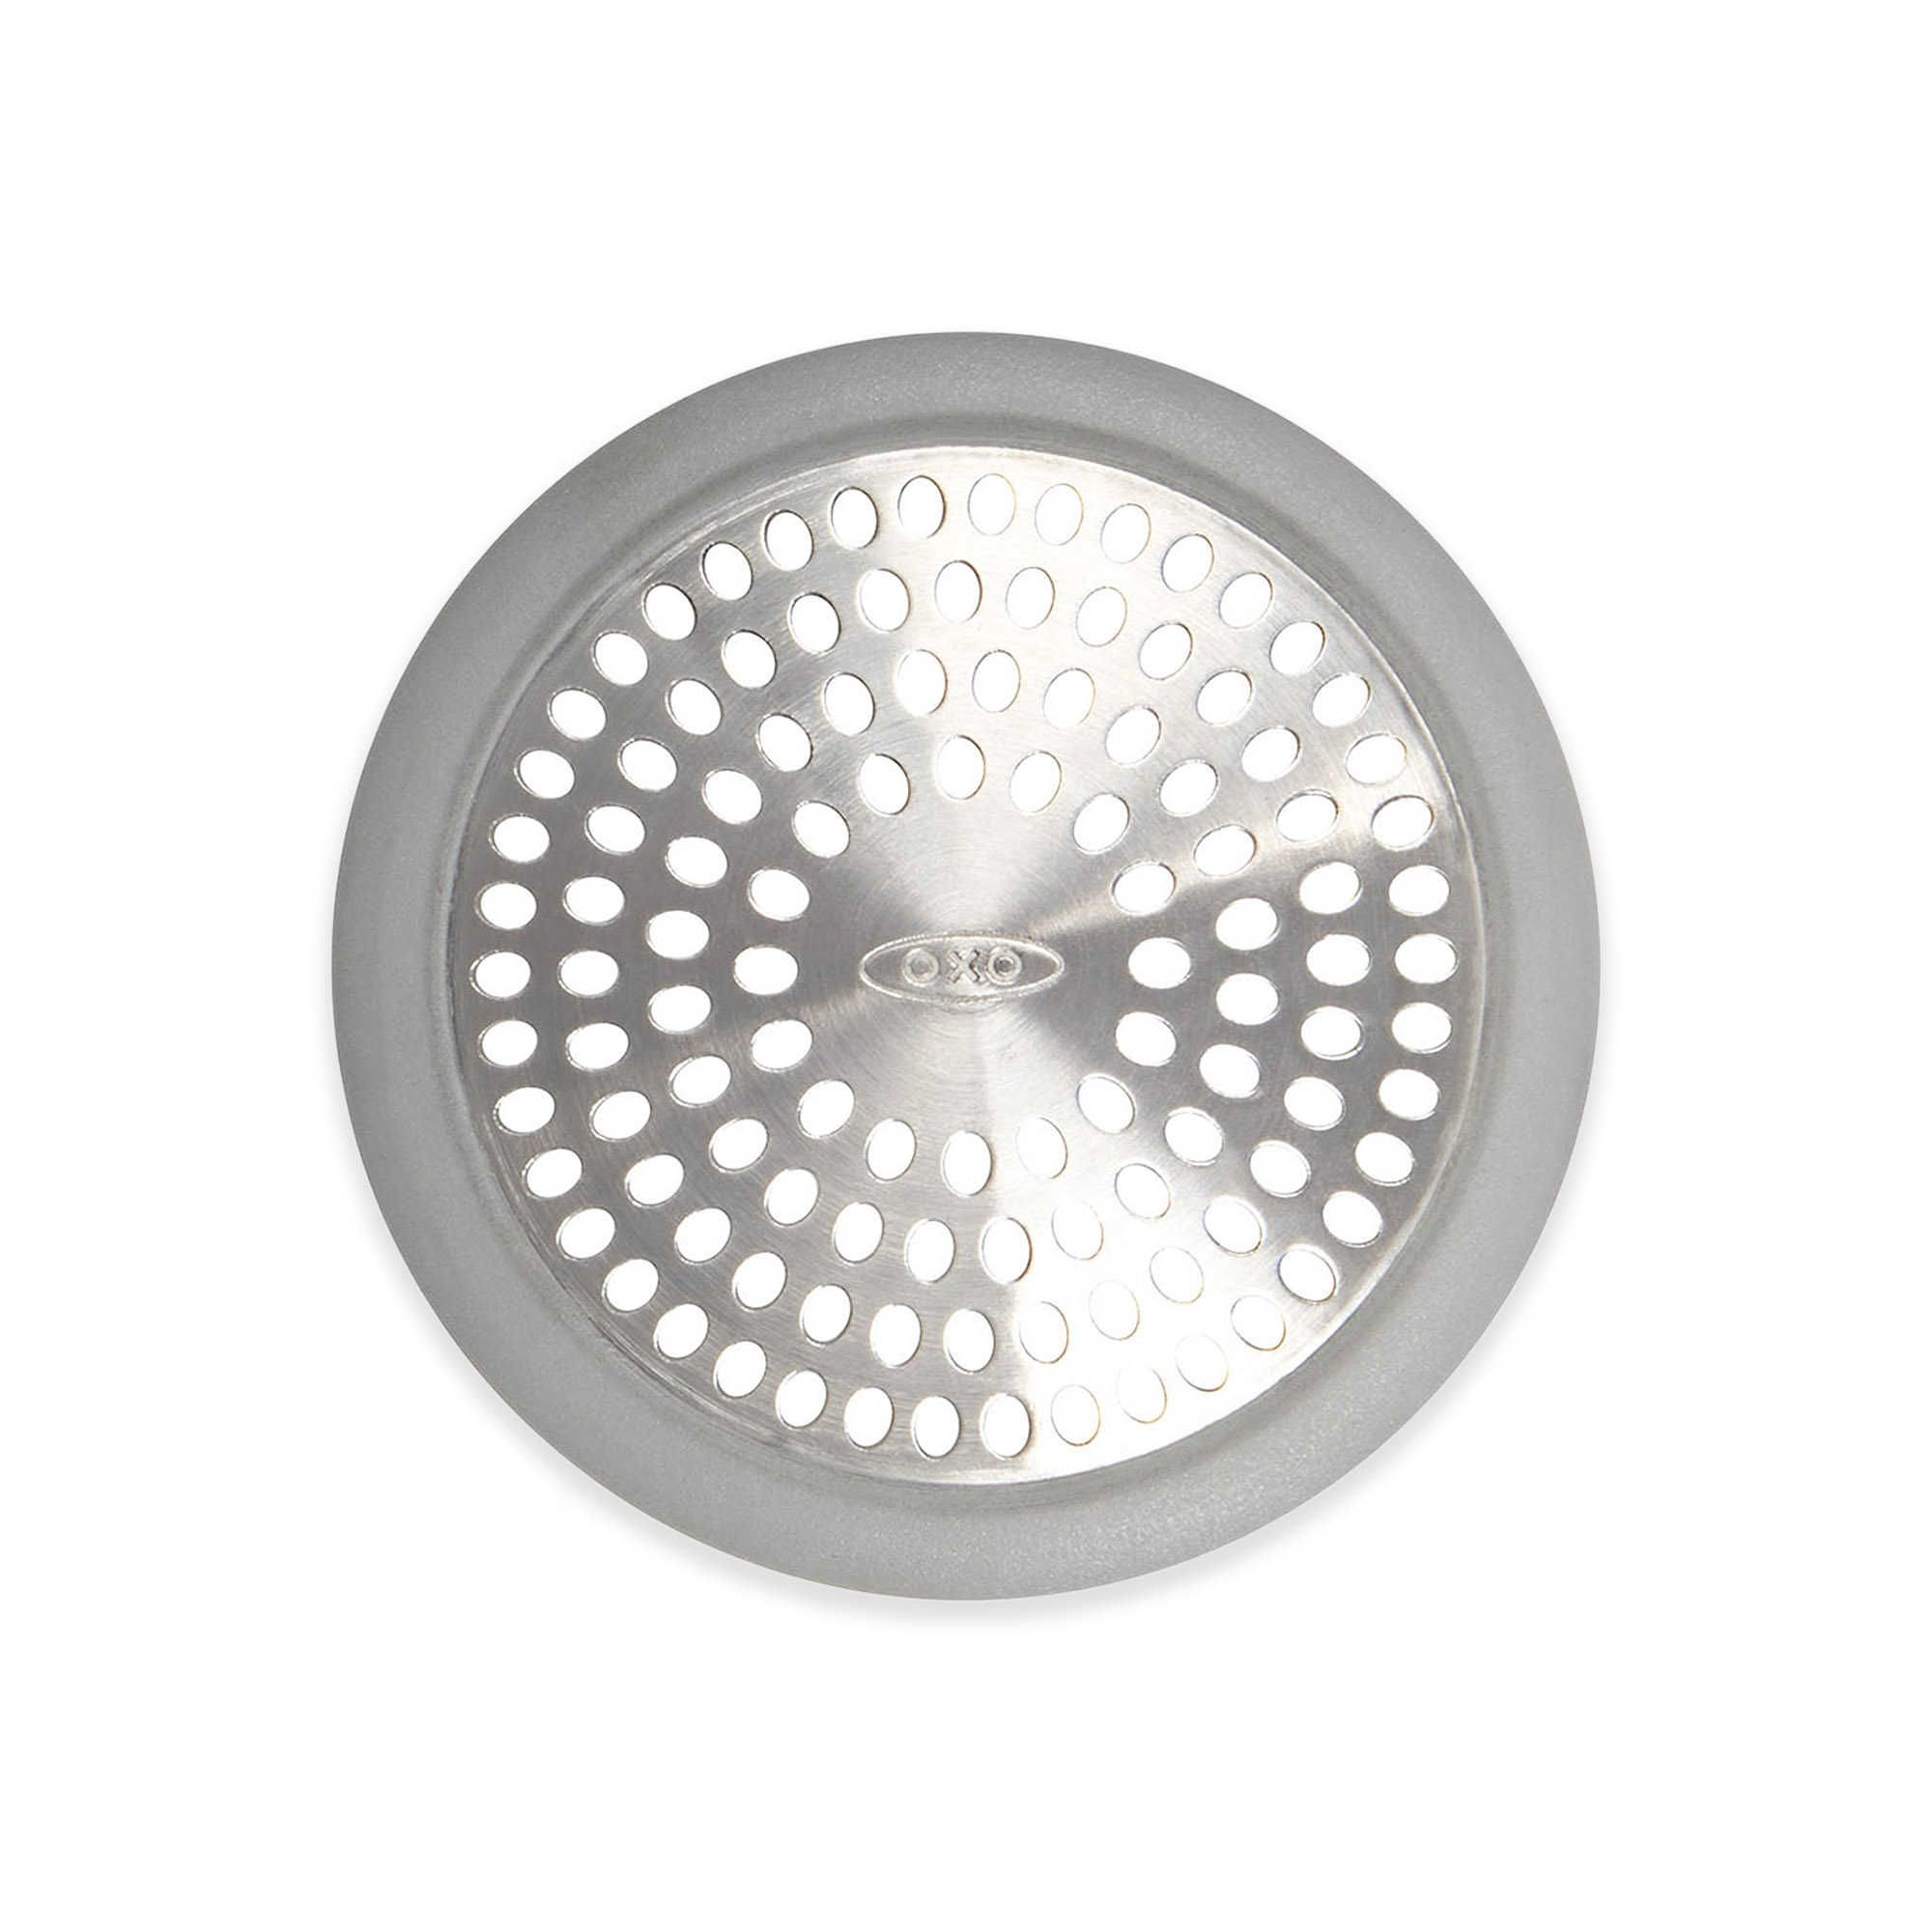 Oxo Good Grips Bathtub Drain Protector Bathtub Drain Bathtub